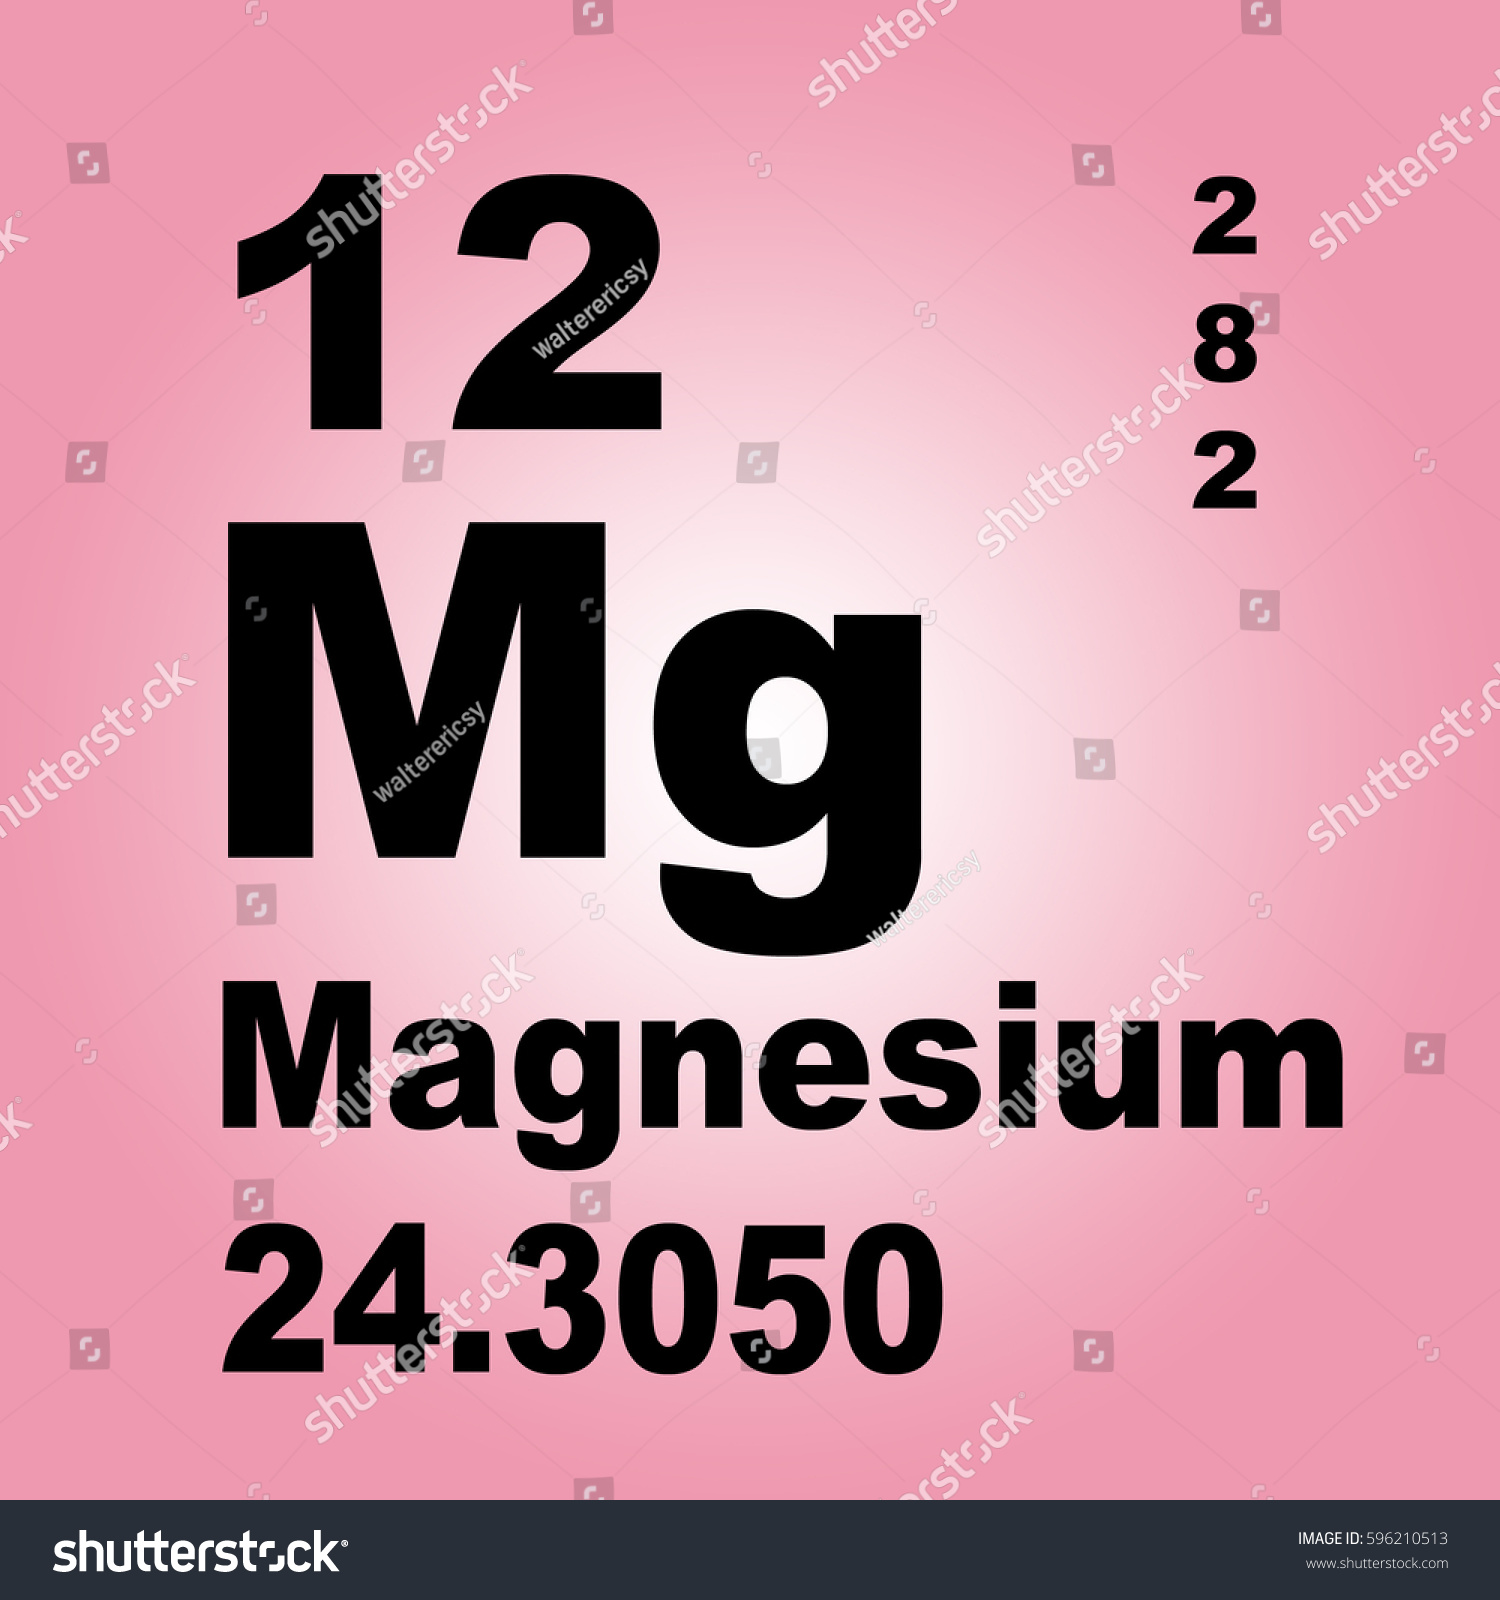 Magnesium periodic table elements stock illustration 596210513 magnesium periodic table of elements gamestrikefo Gallery